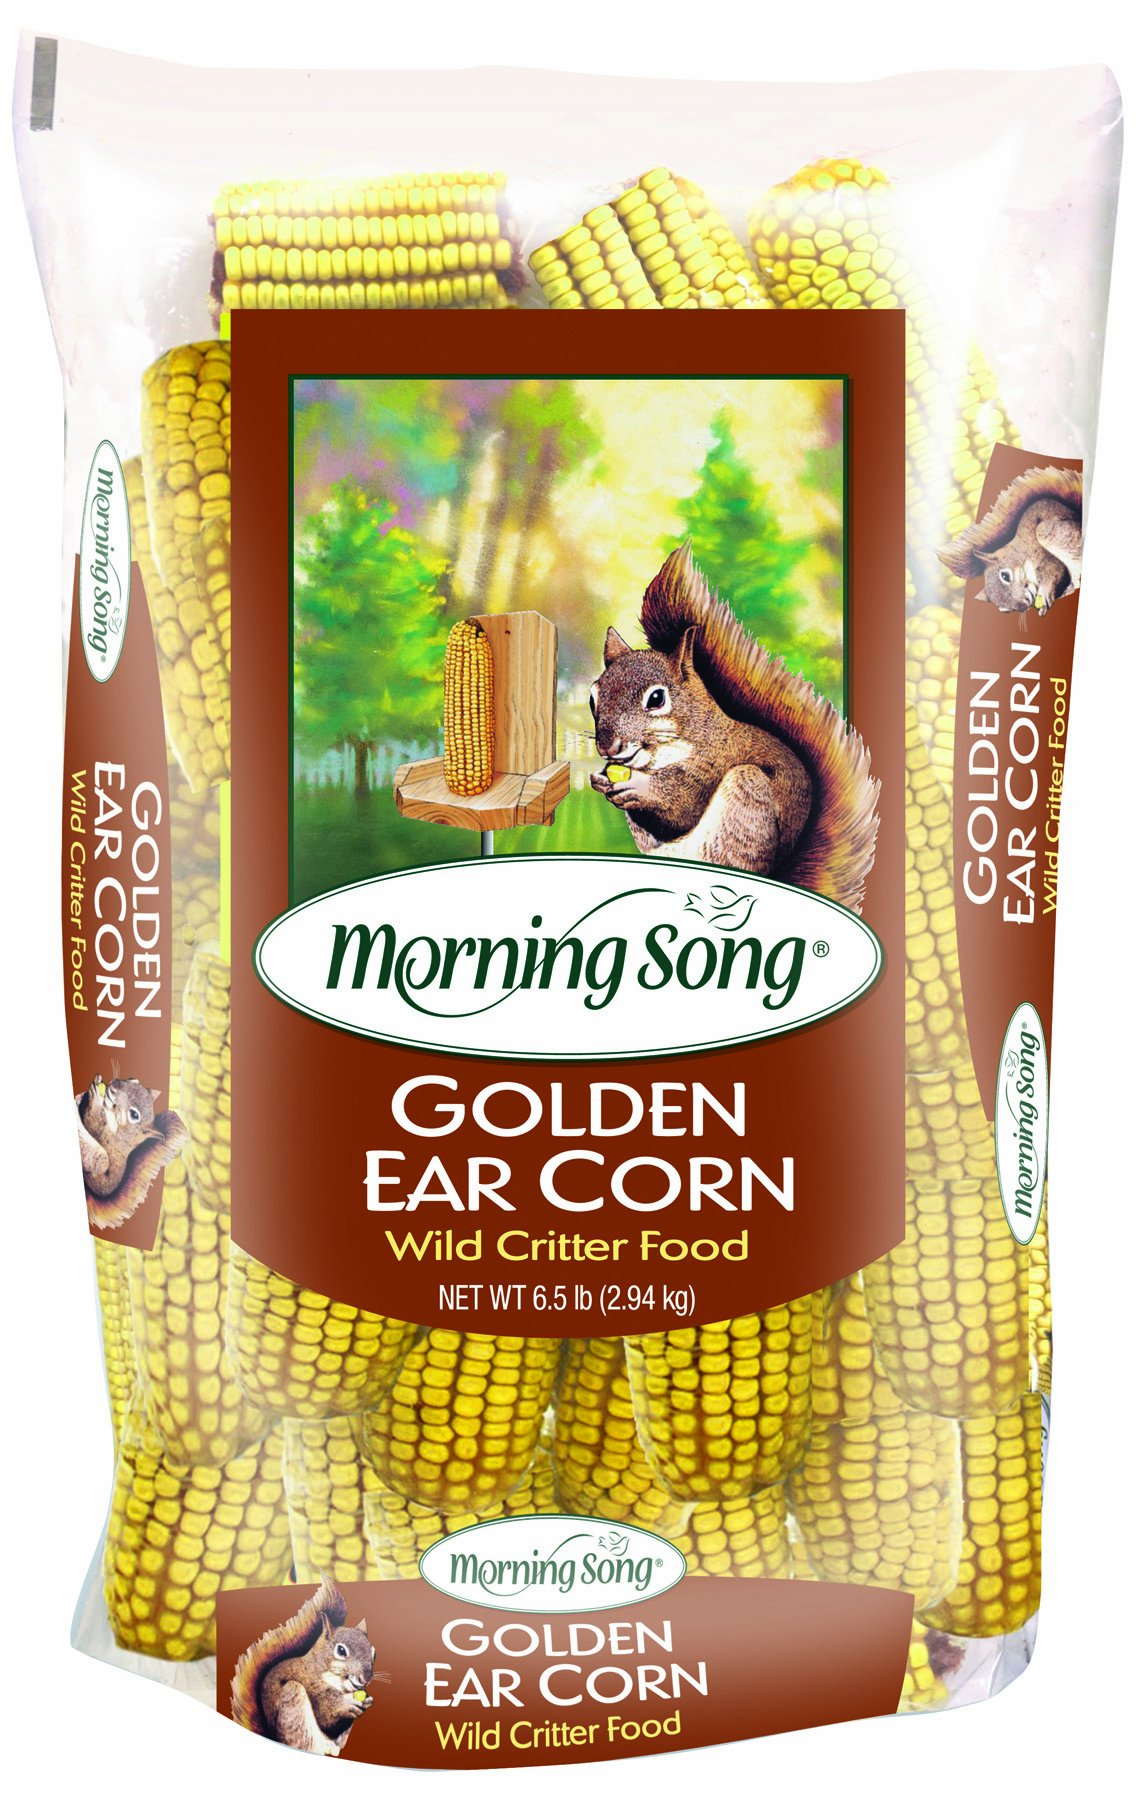 Morning Song 11412 Golden Ear Corn Wildlife Food,  6.5-Pound by Morning Song (Image #1)